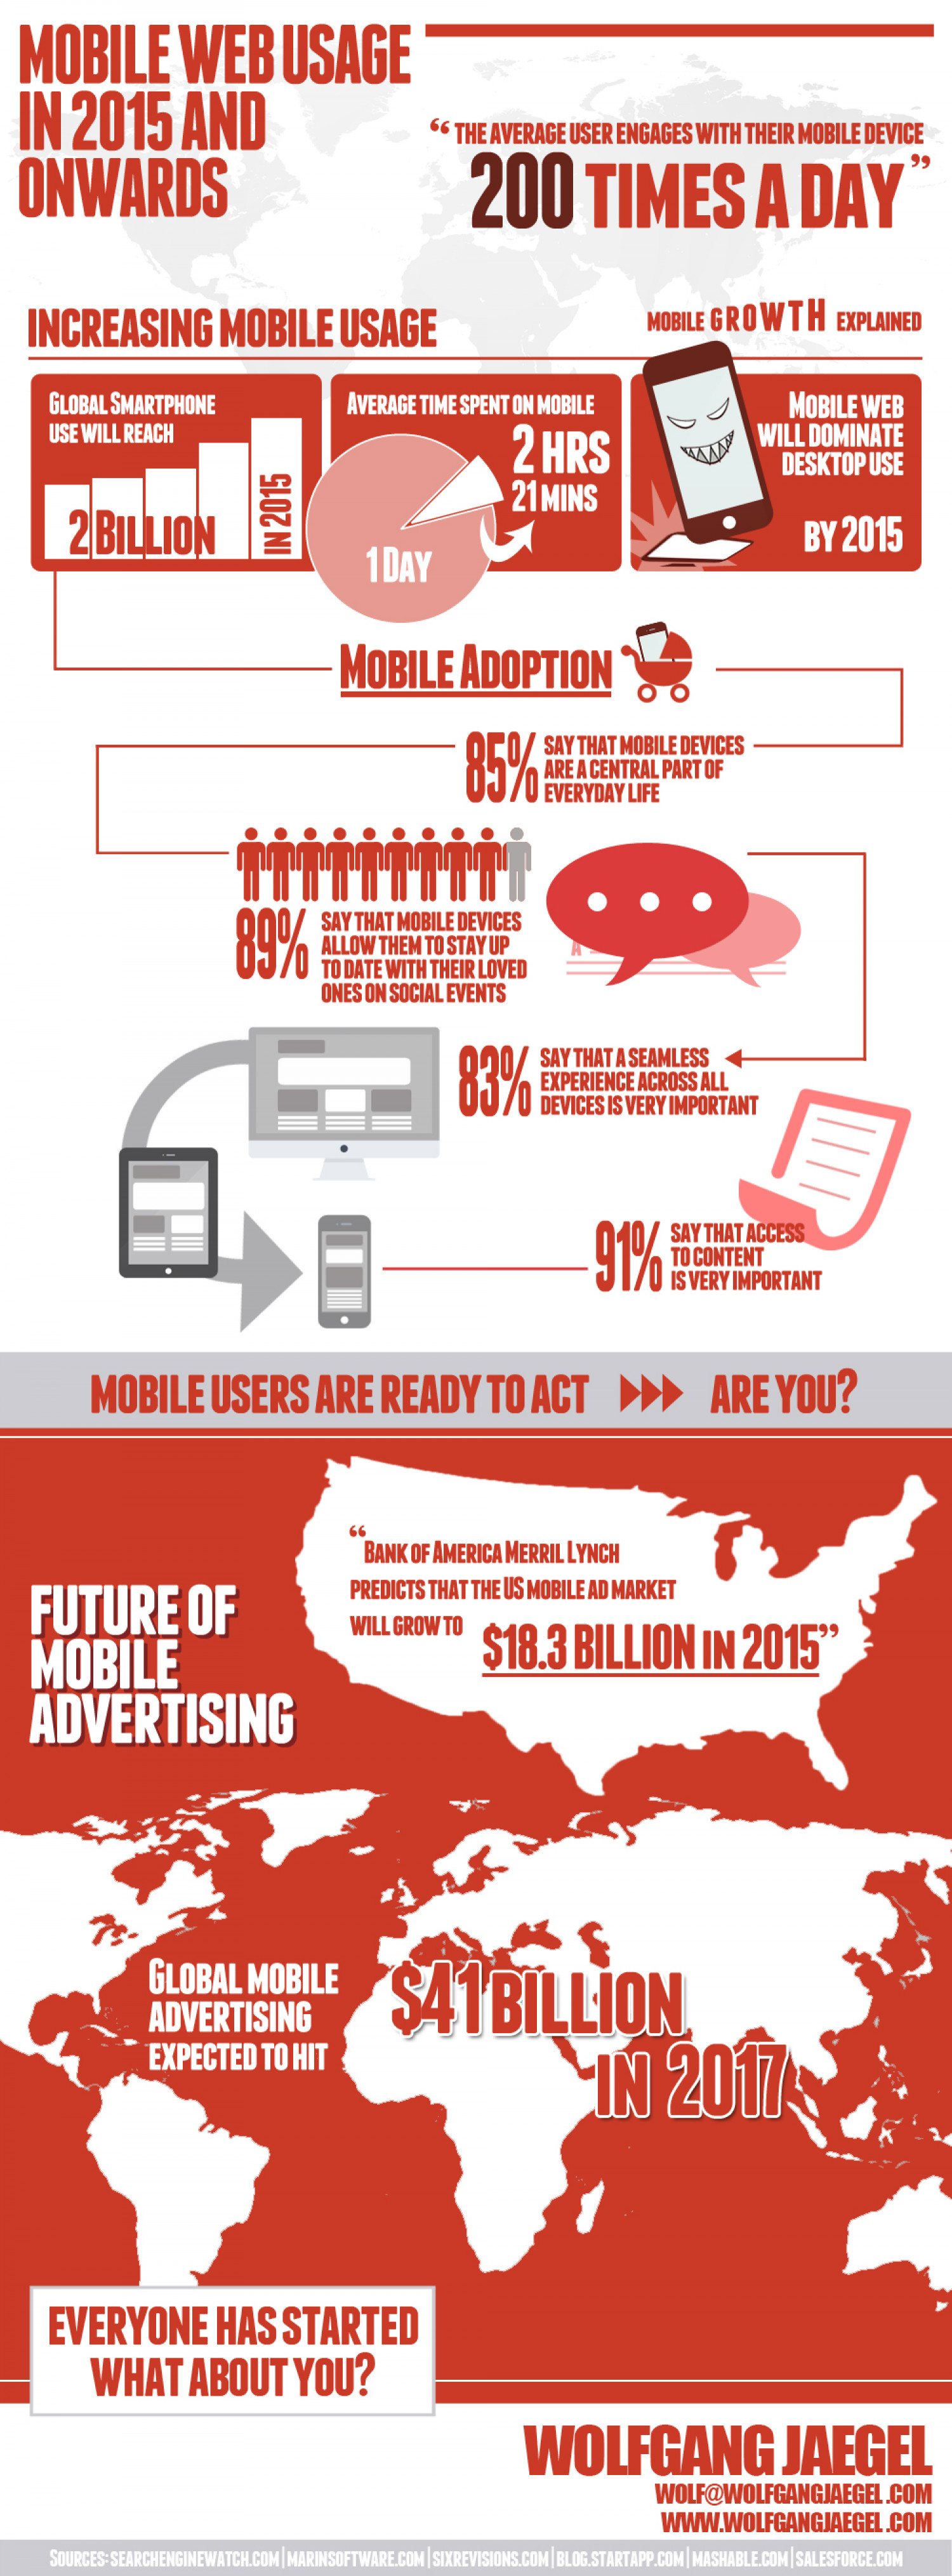 Mobile Web Usage in 2015 and Onwards Infographic